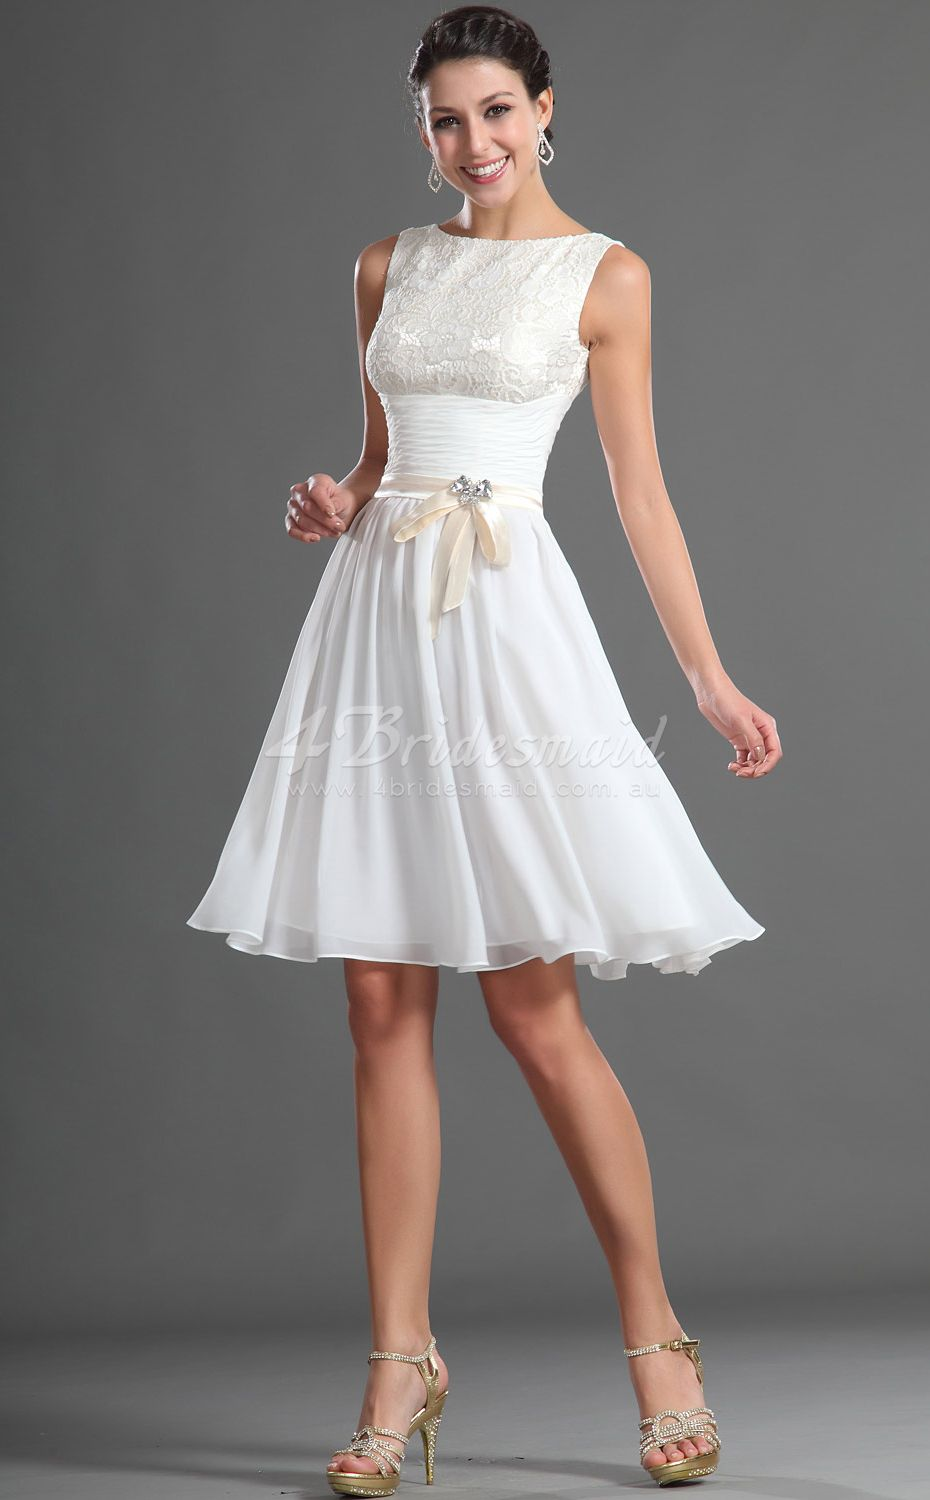 Mini white wedding dress  Aline Jewel ShortMini White Chiffon Bridesmaid DressesBD